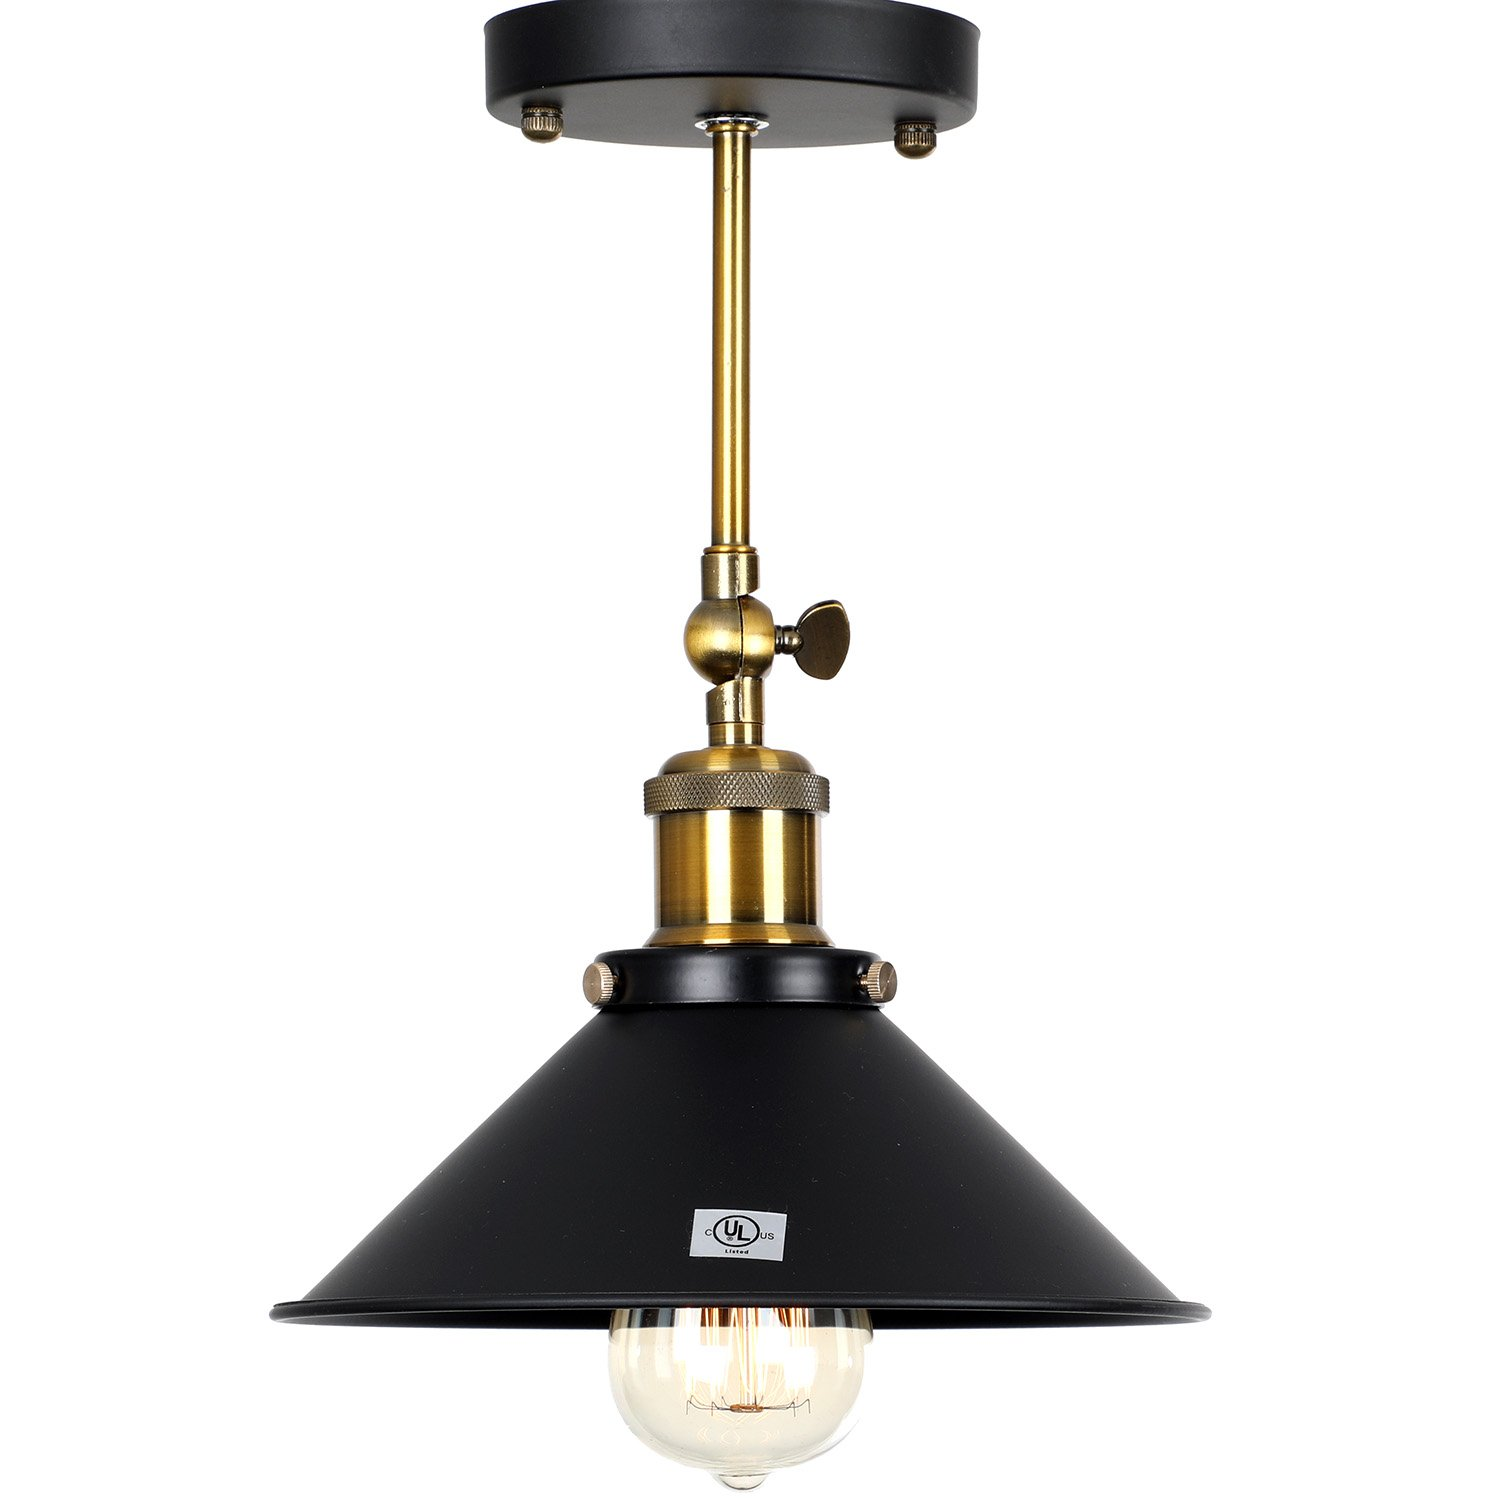 Bulb not Included U/'Artlines Vintage Industrial Wall Lights Sconce Retro Wall Light Fixtures Lamp Shade Metal E27 Perfect for Kitchen Restaurant Loft Coffee Bar